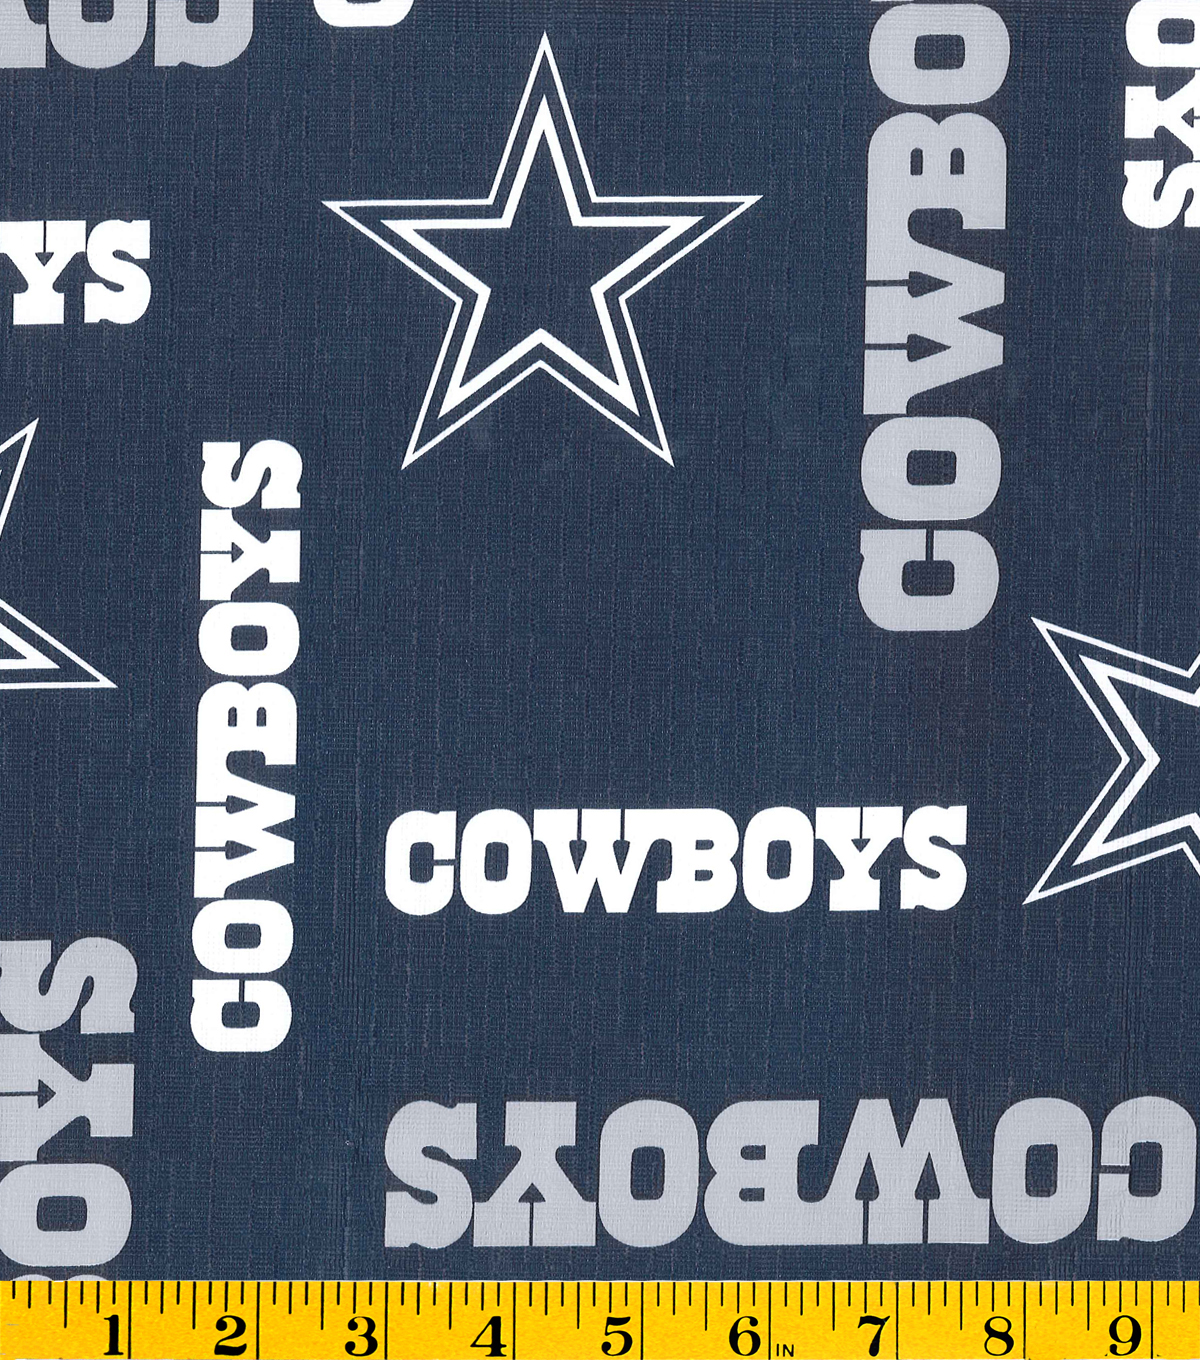 dallas cowboys nfl tablecloth vinyl joann artistic accents fabric logo door cabinet glass patio end table united furniture calgary grill master parts nautical vanity silver and